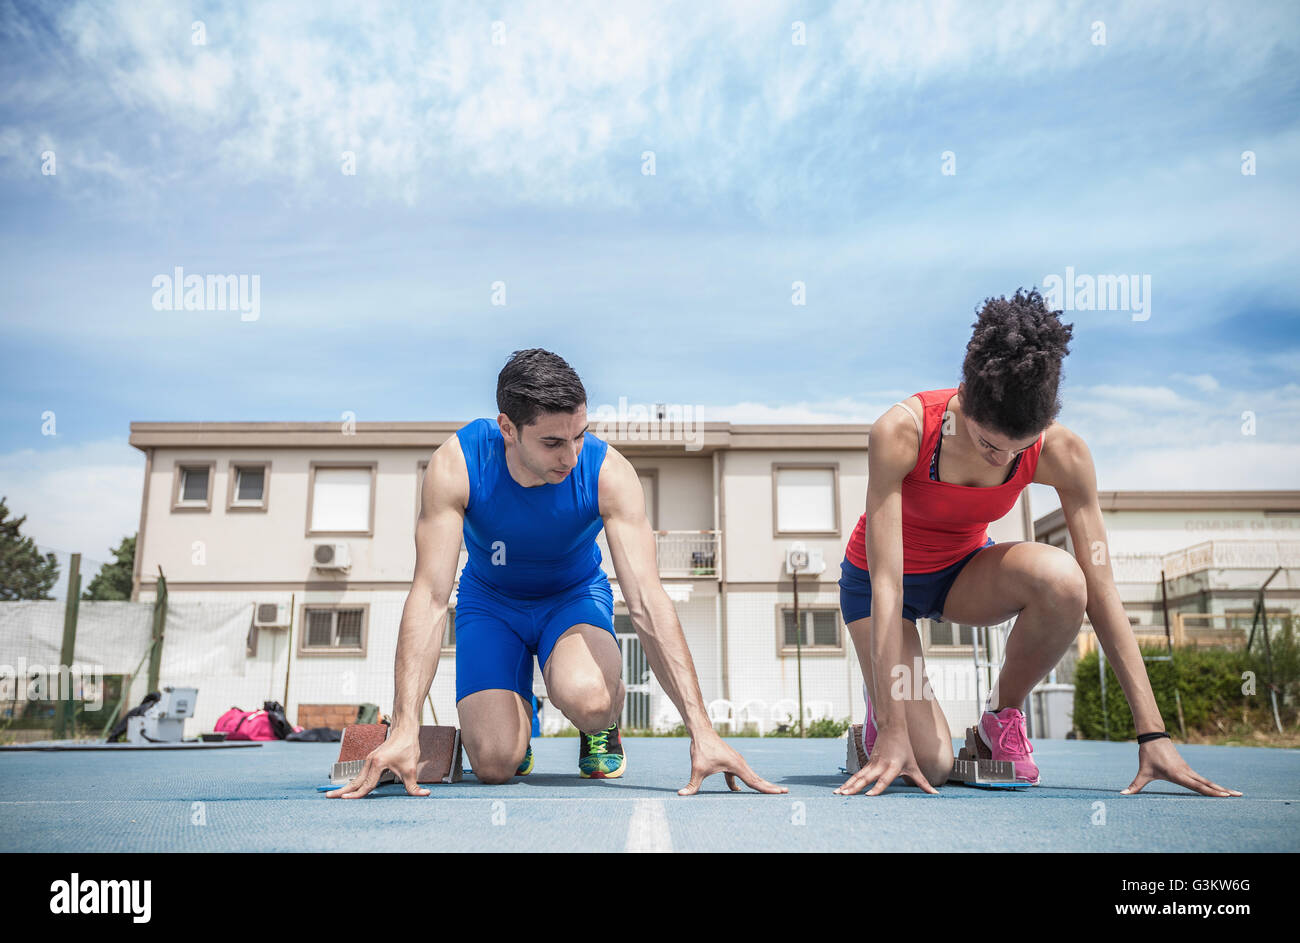 Young male and female sprinters training on running track - Stock Image